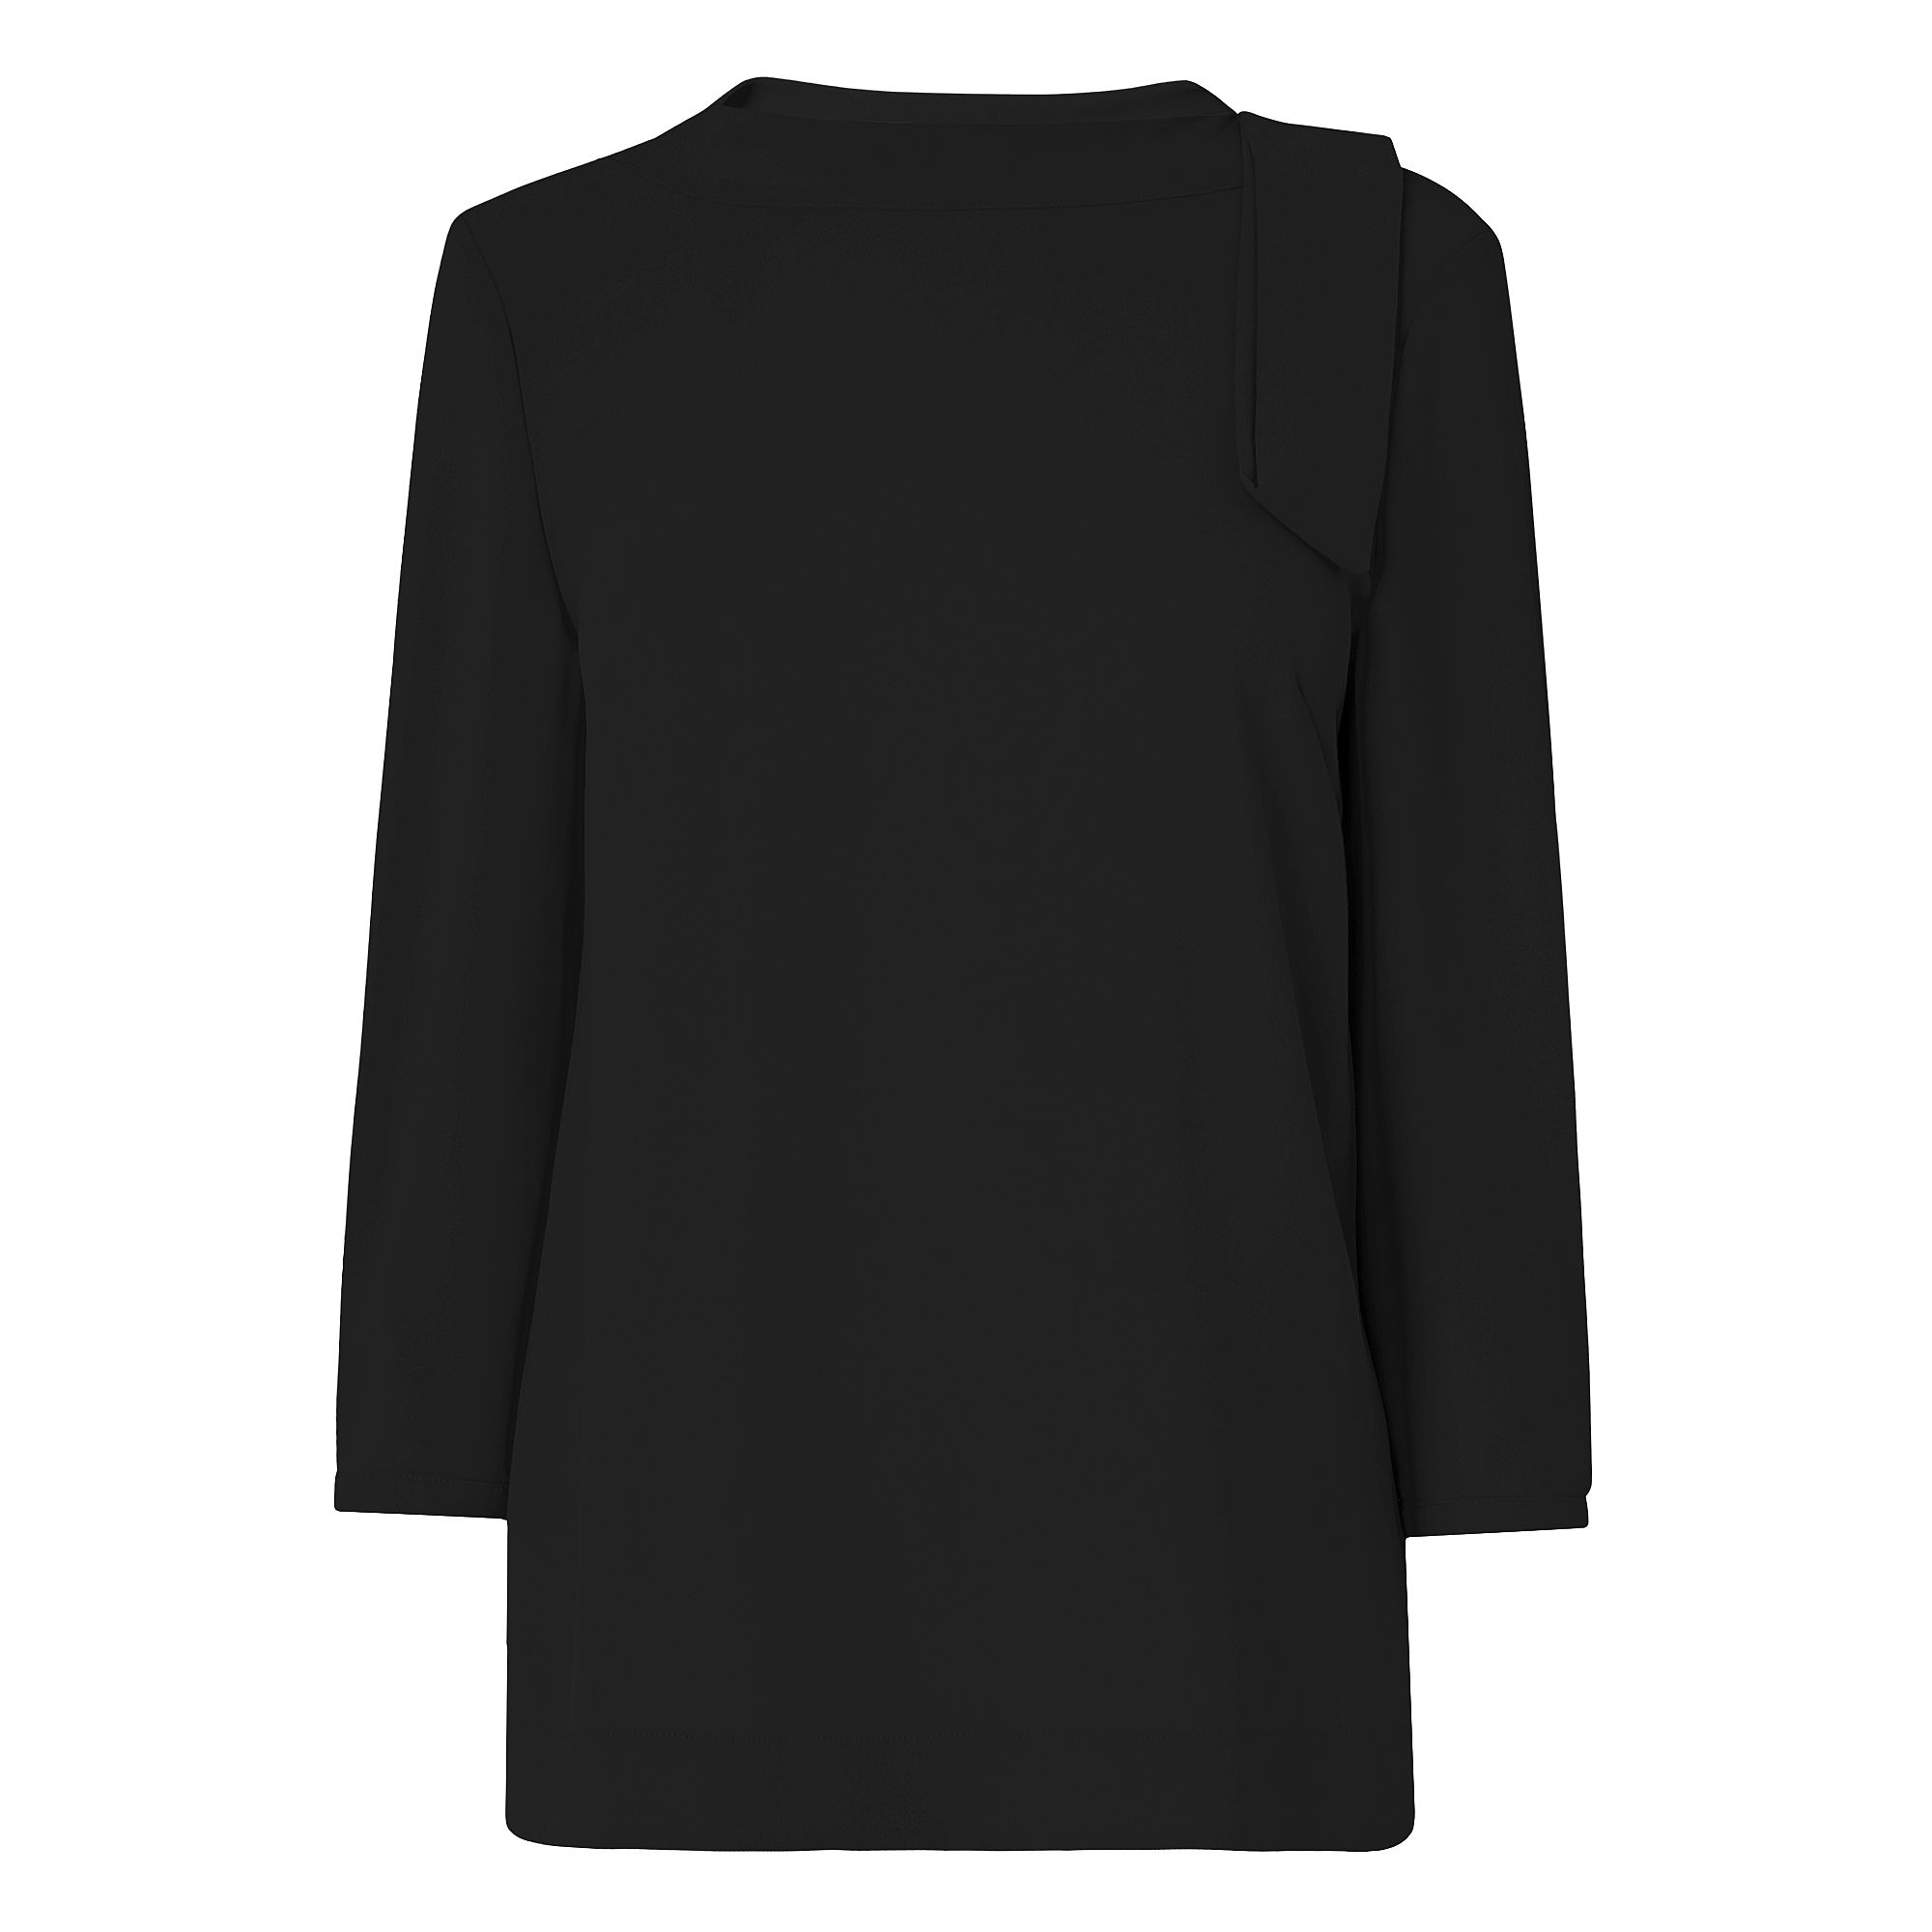 L.K. Bennett Hebe Black Woven Top, Black